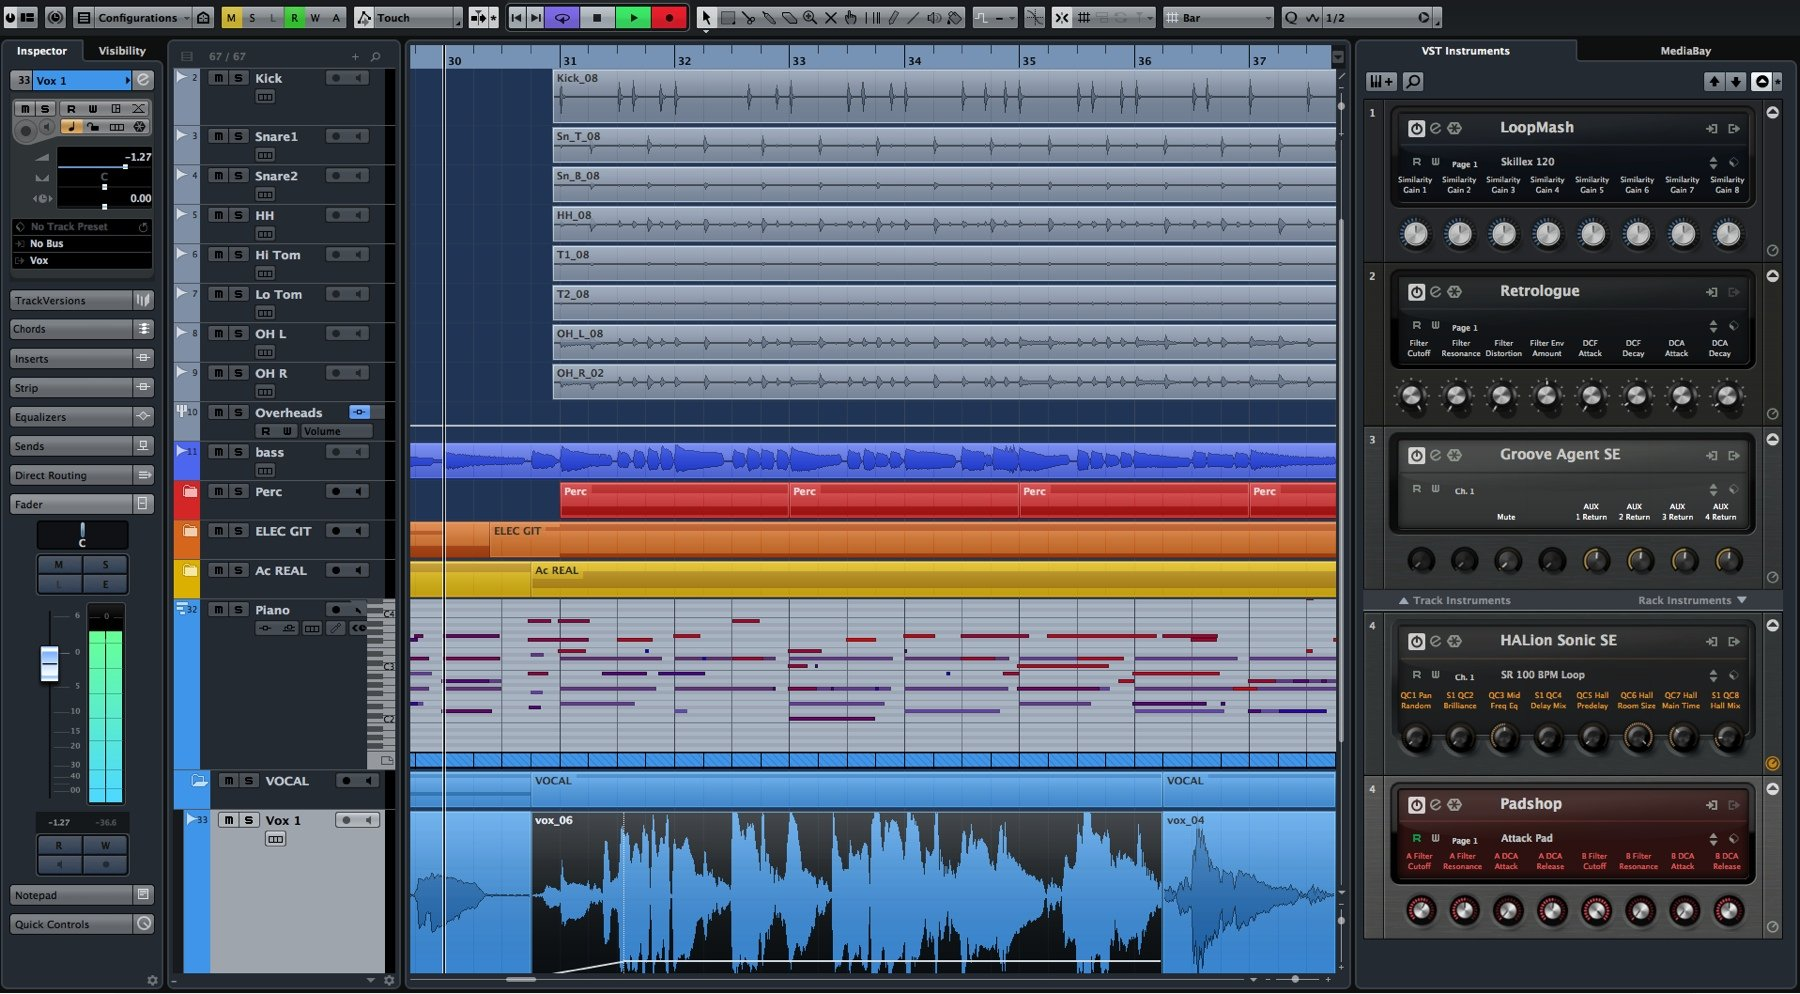 cubase 5 software price in india